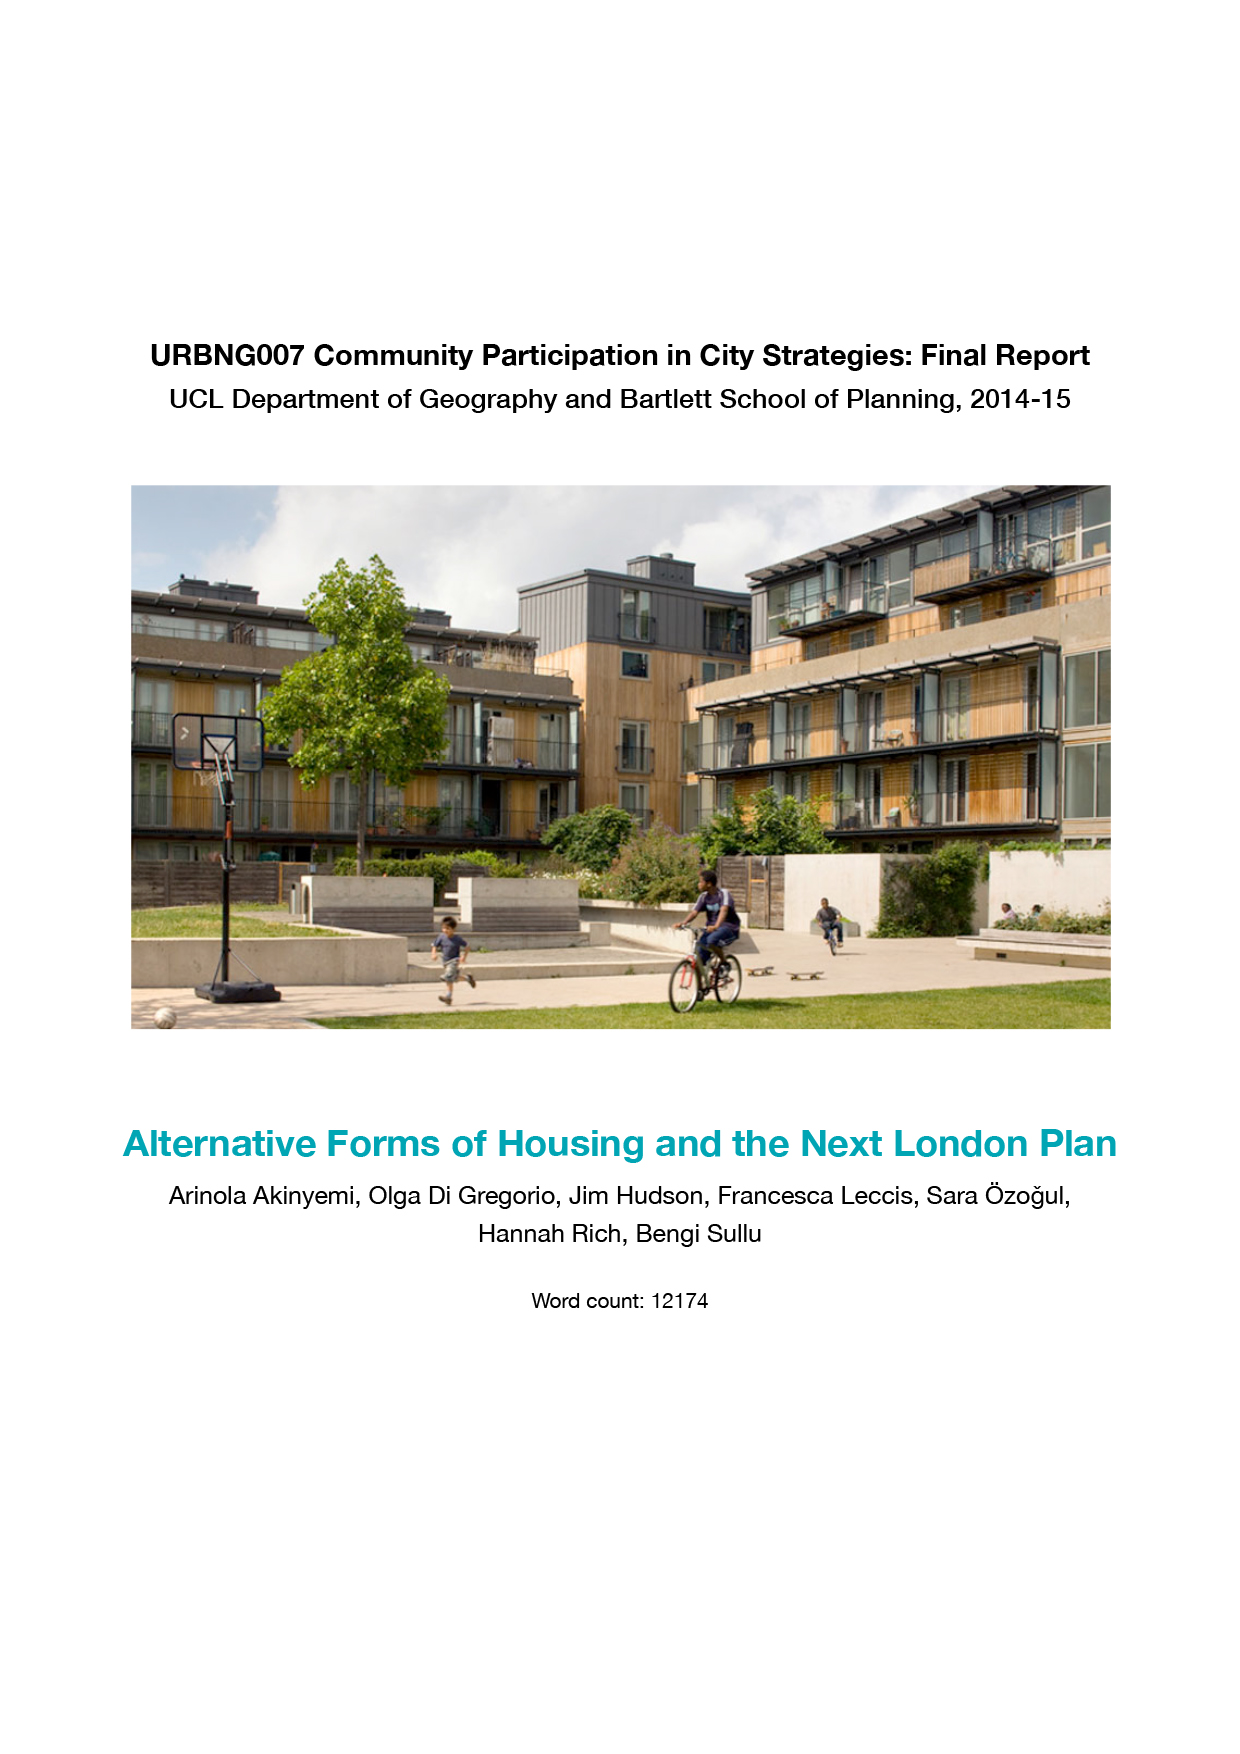 Alternative Forms of Housing and the Next London Plan